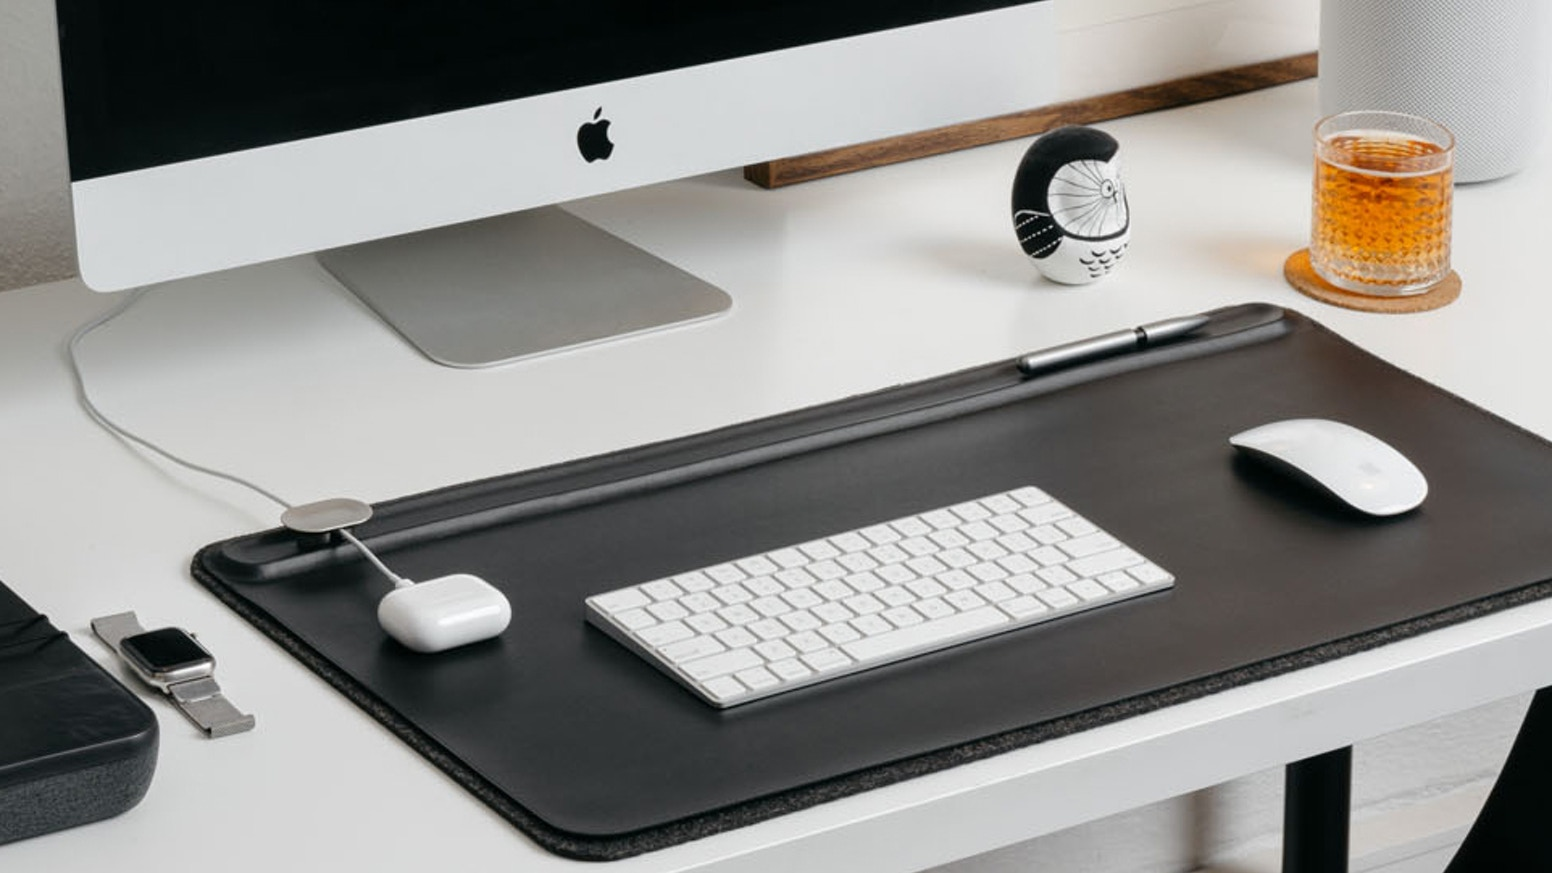 A clever desk mat with built-in organisational features.